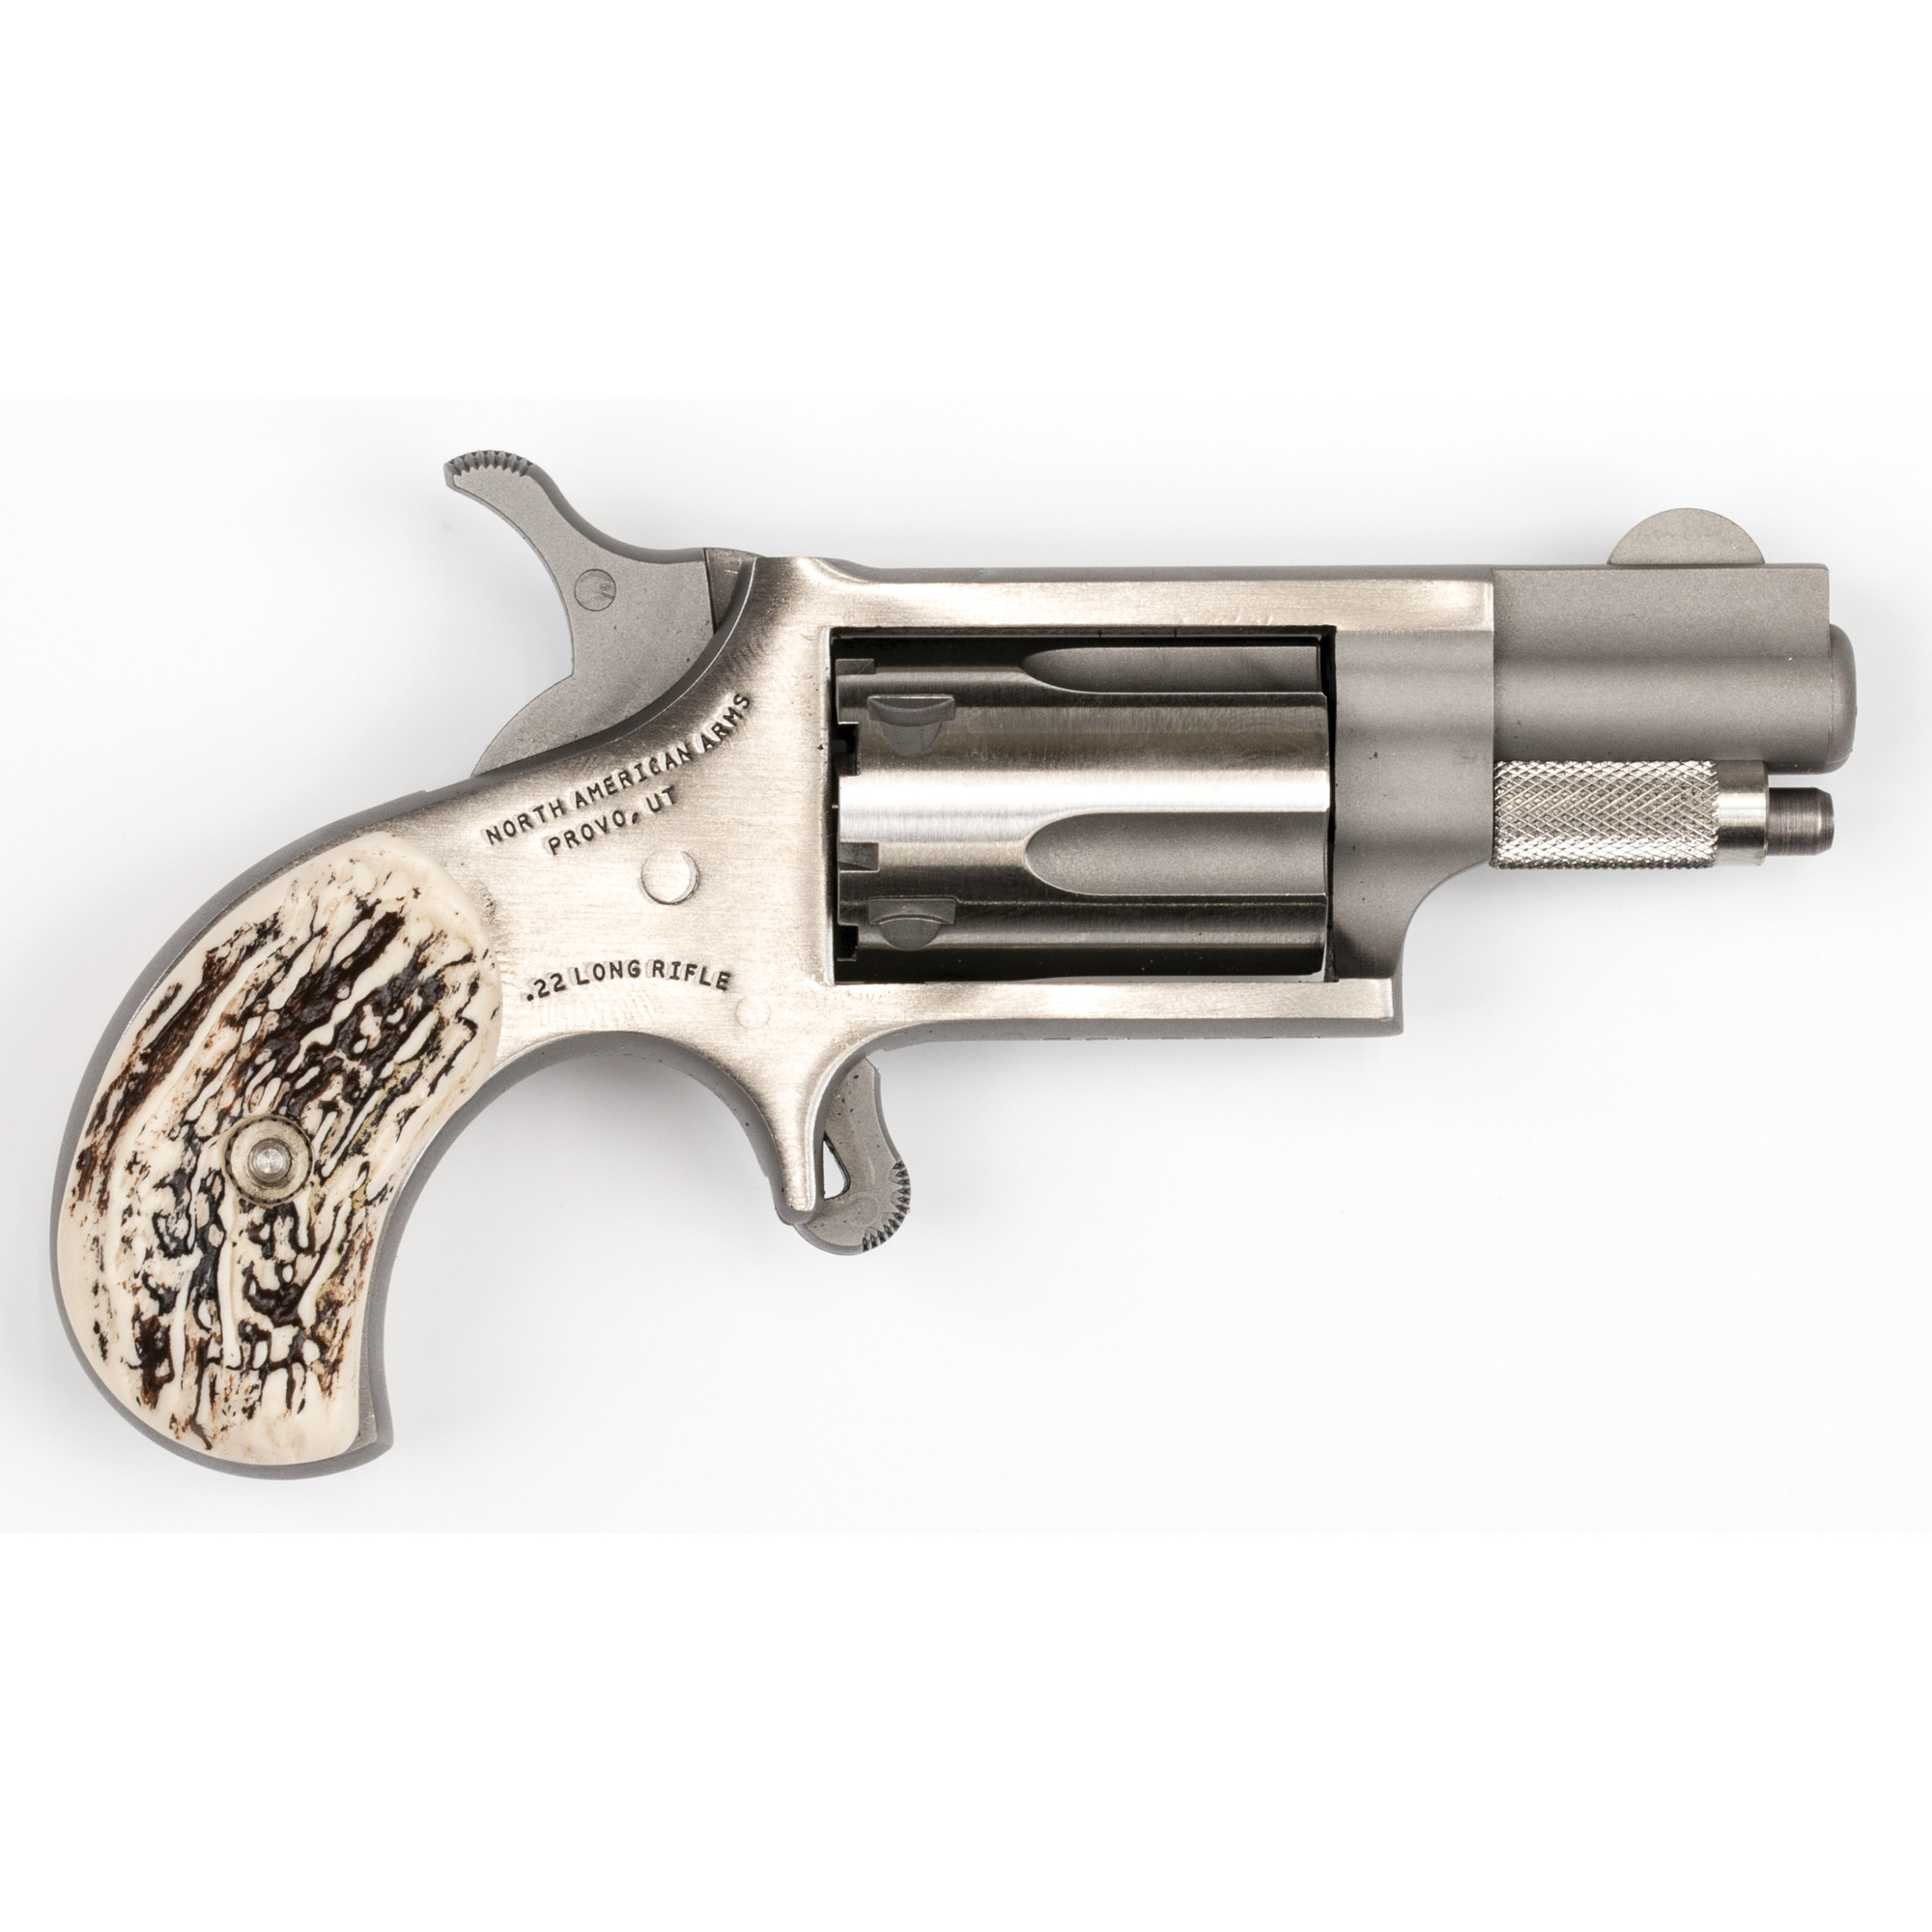 "The NAA .22 Long Rifle is the most popular Mini-Revolver ever produced. With the many current accessories"" it is versatile for many applications and is the standard by which other Mini-Revolvers are judged."